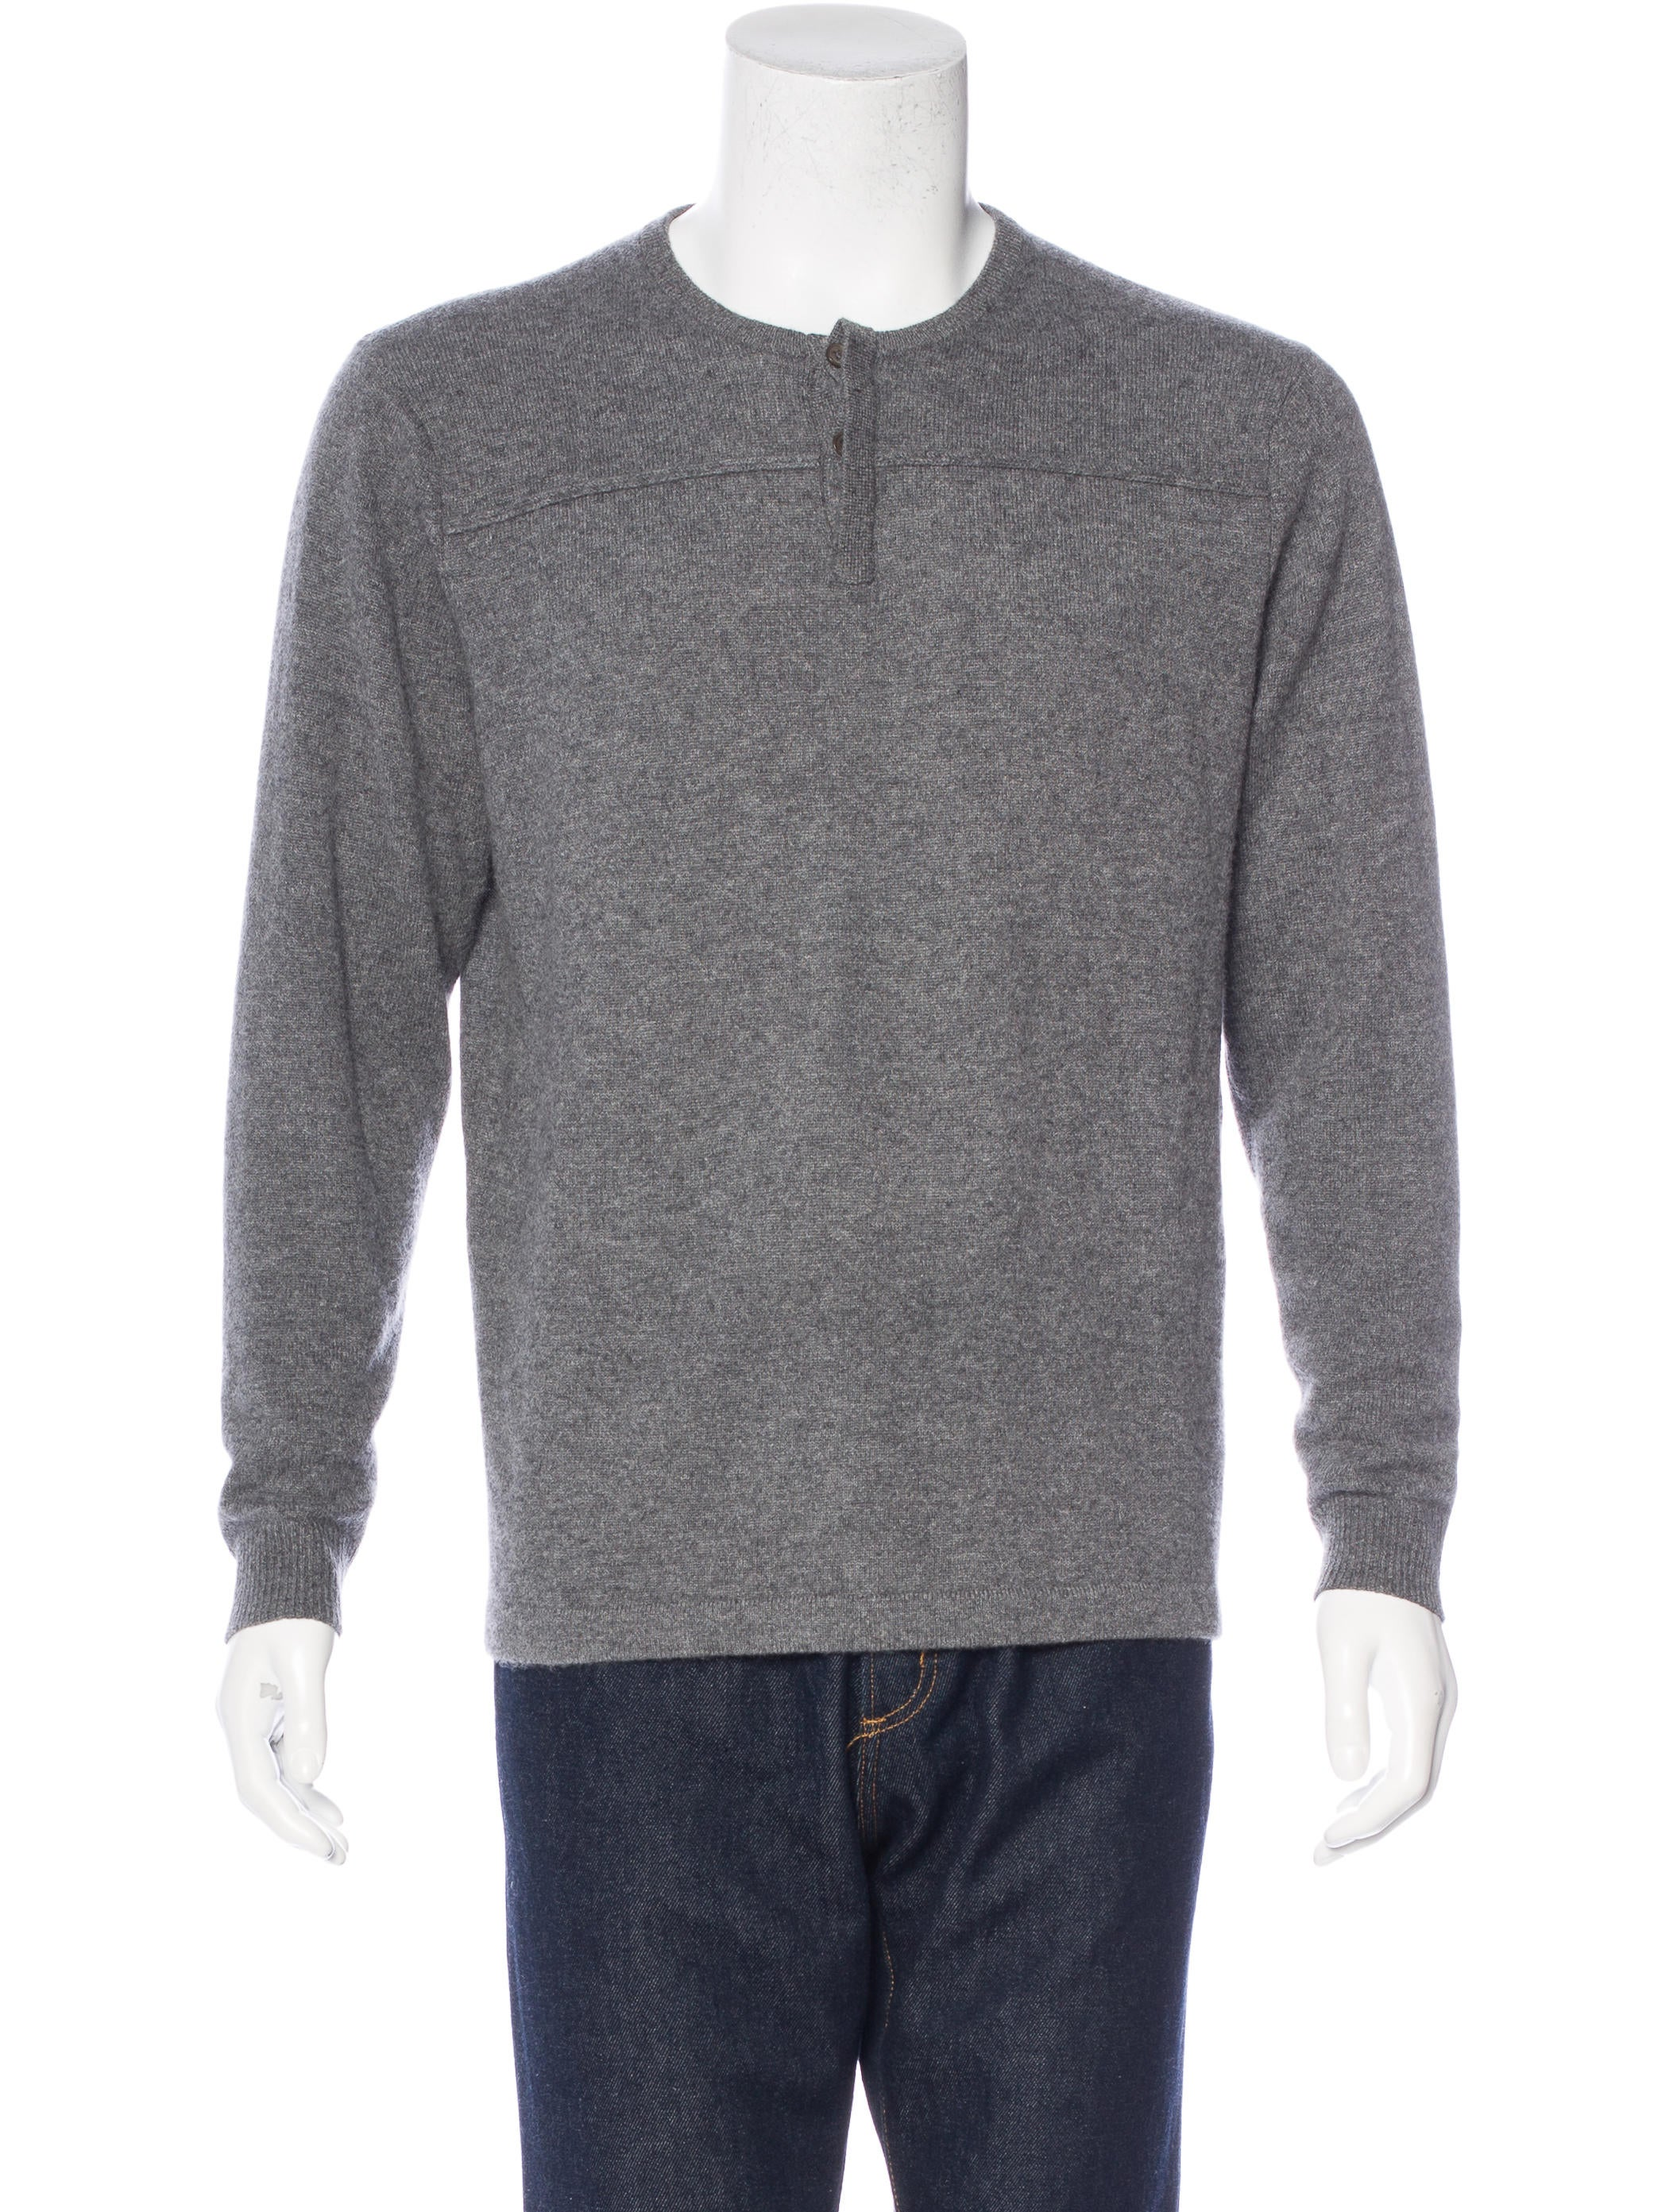 Shop from the world's largest selection and best deals for Henley Jumpers for Men. Free delivery and free returns on eBay Plus items.